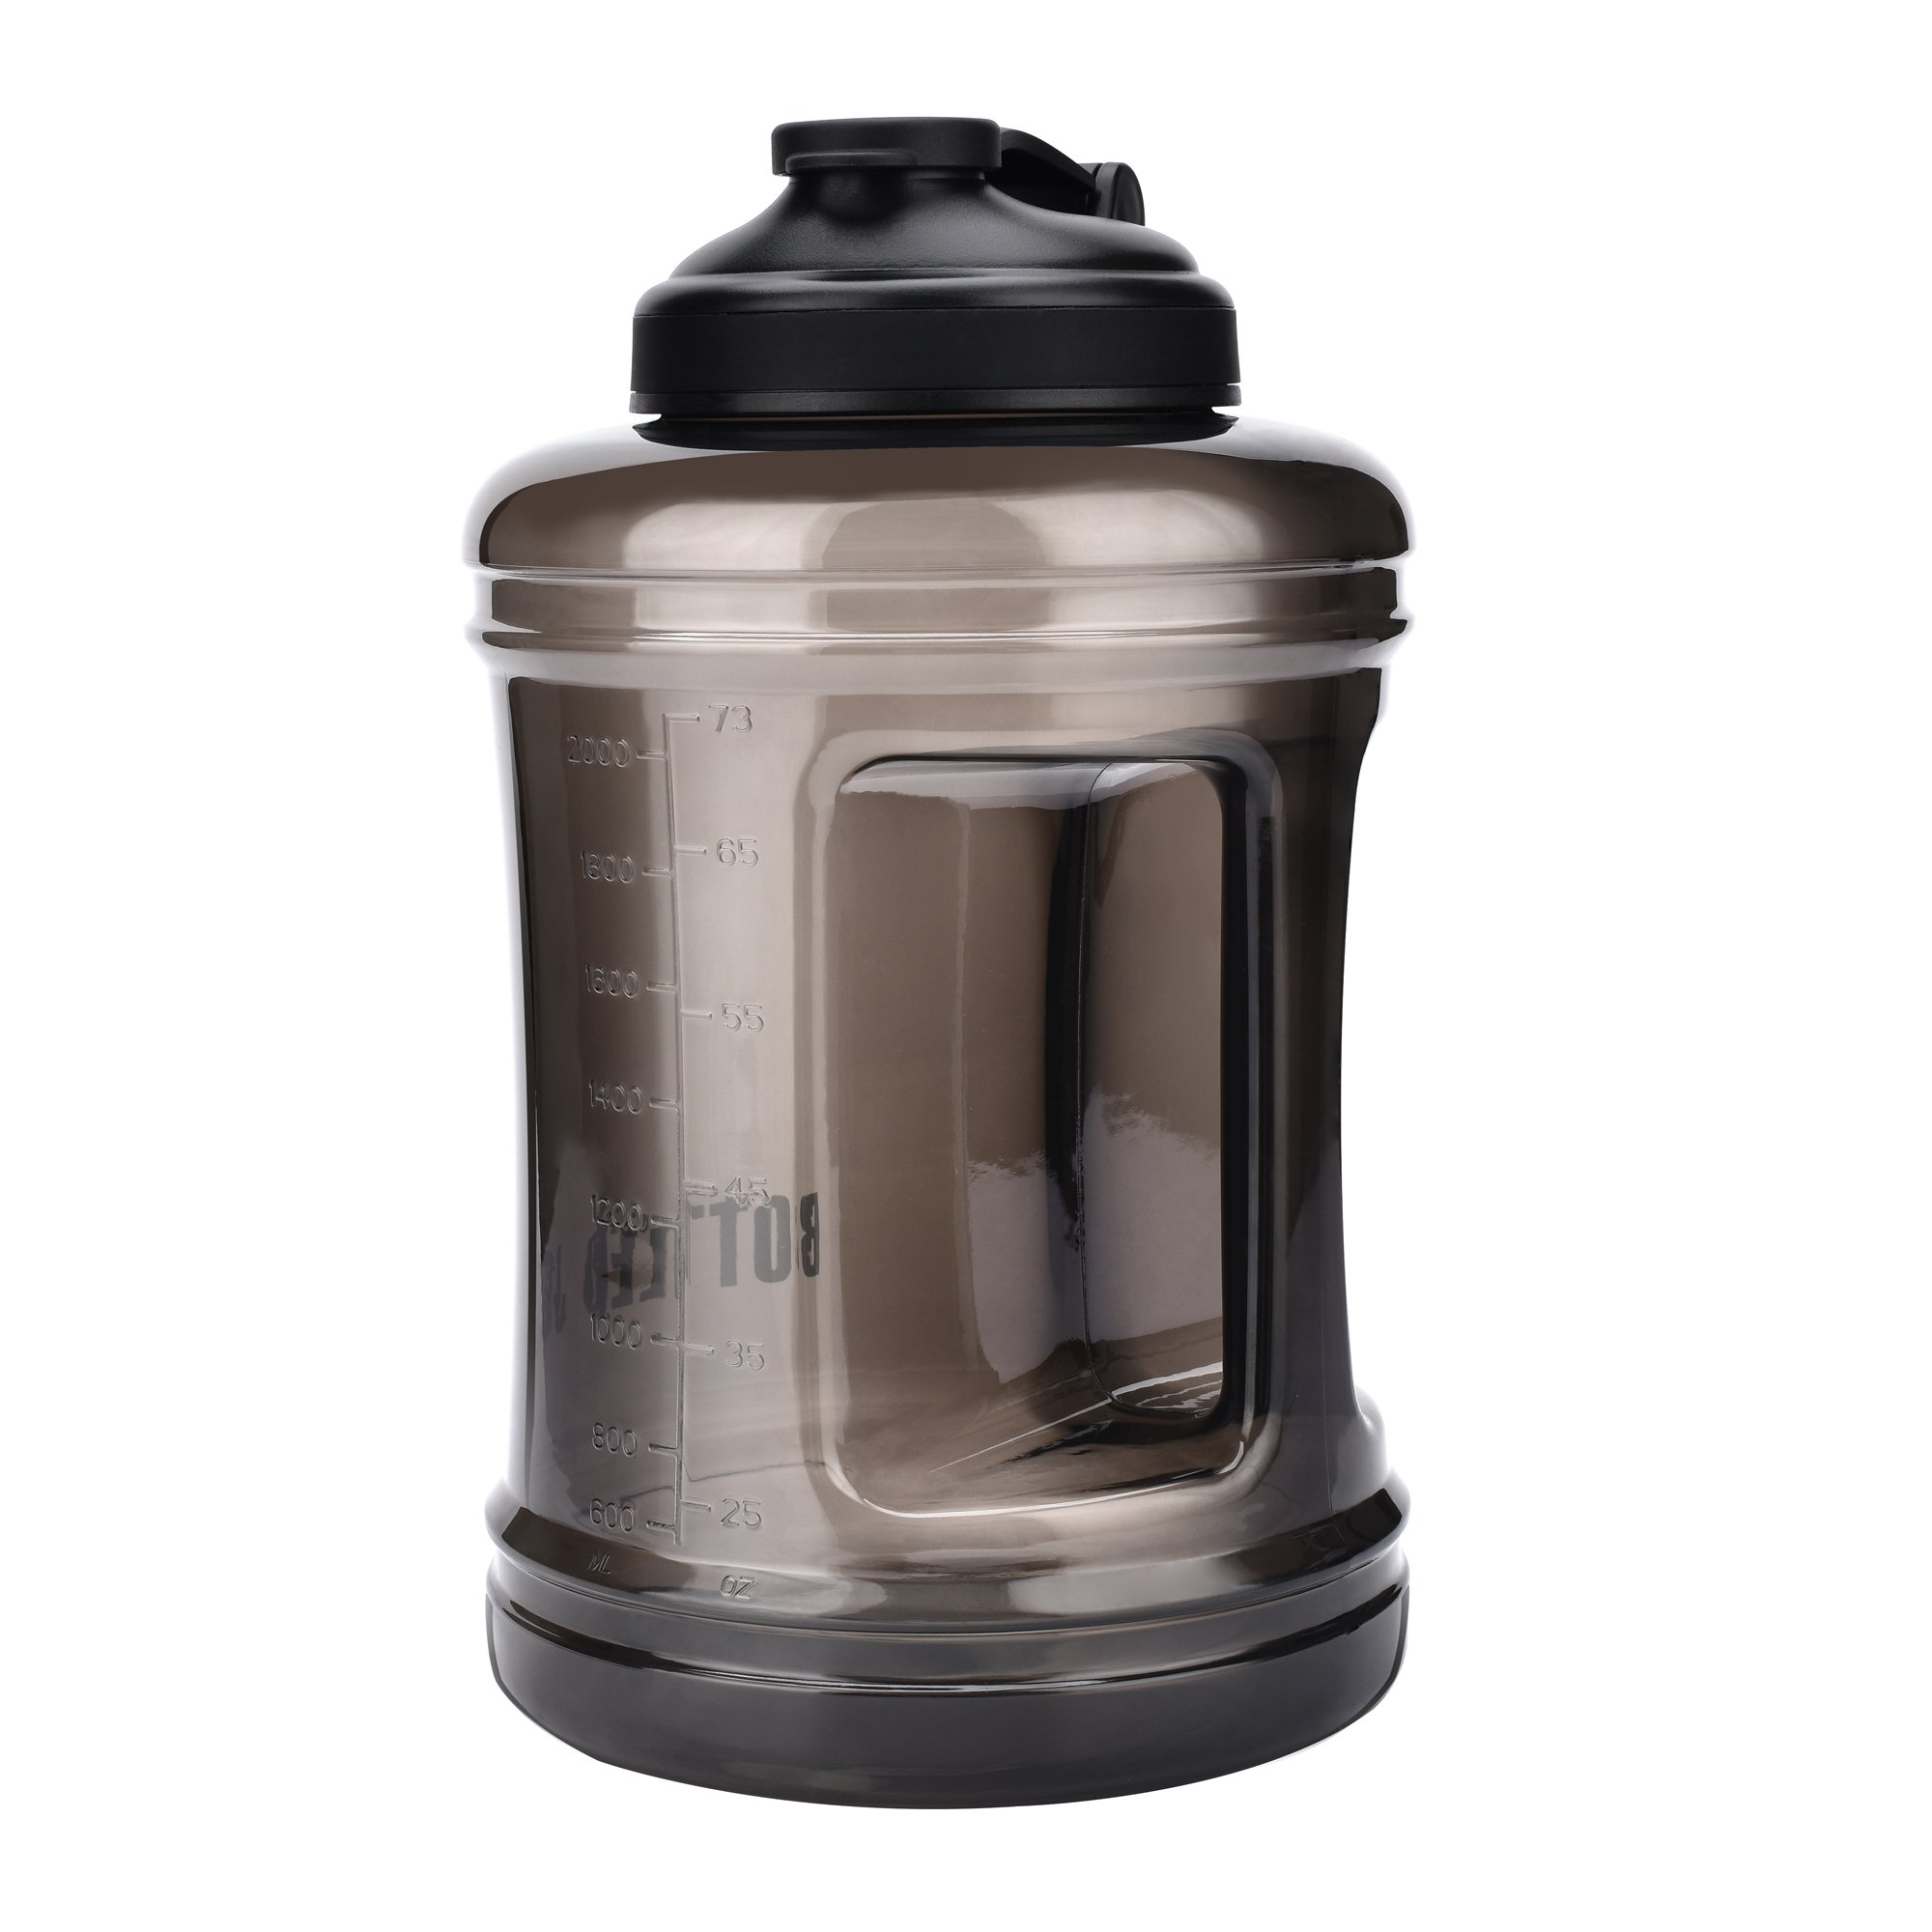 Large Capacity Water Bottle Jug [85OZ/2.5L, Hard BPA-Free PETG Material] Huge Drinking Bottles Water Container for Outdoor Training Bodybuilding Gym Camping and more